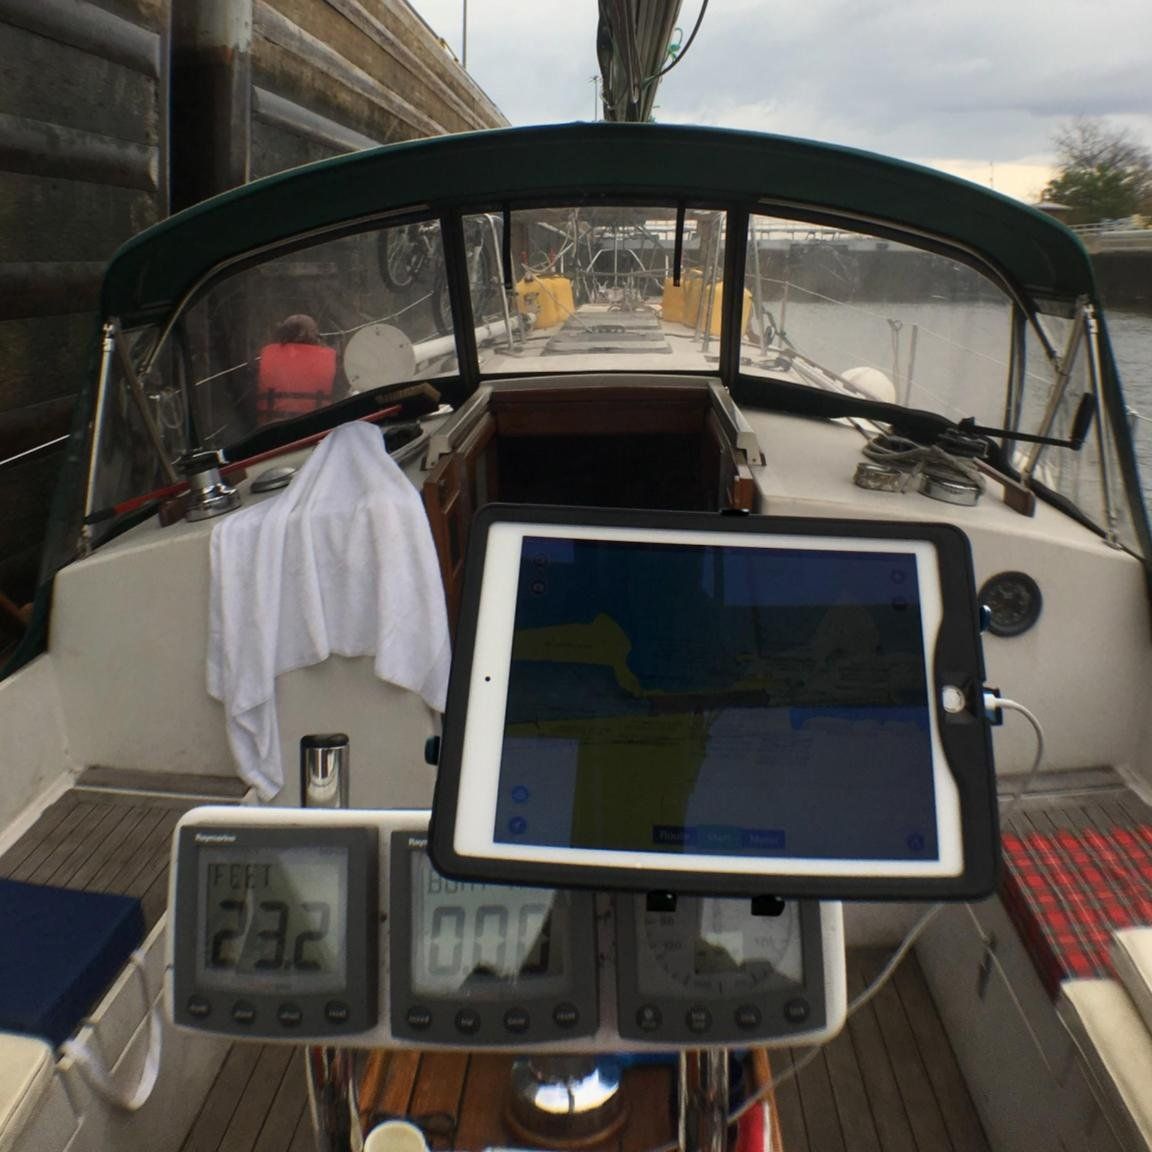 Universal Tablet Mount For Boat Cockpit Helm The Best Download Image Wiring Diagram Pc Android Iphone And Ipad Fully Adjustable Clamp On Secure Heavy Duty Holder With Anodized Aluminum Joints